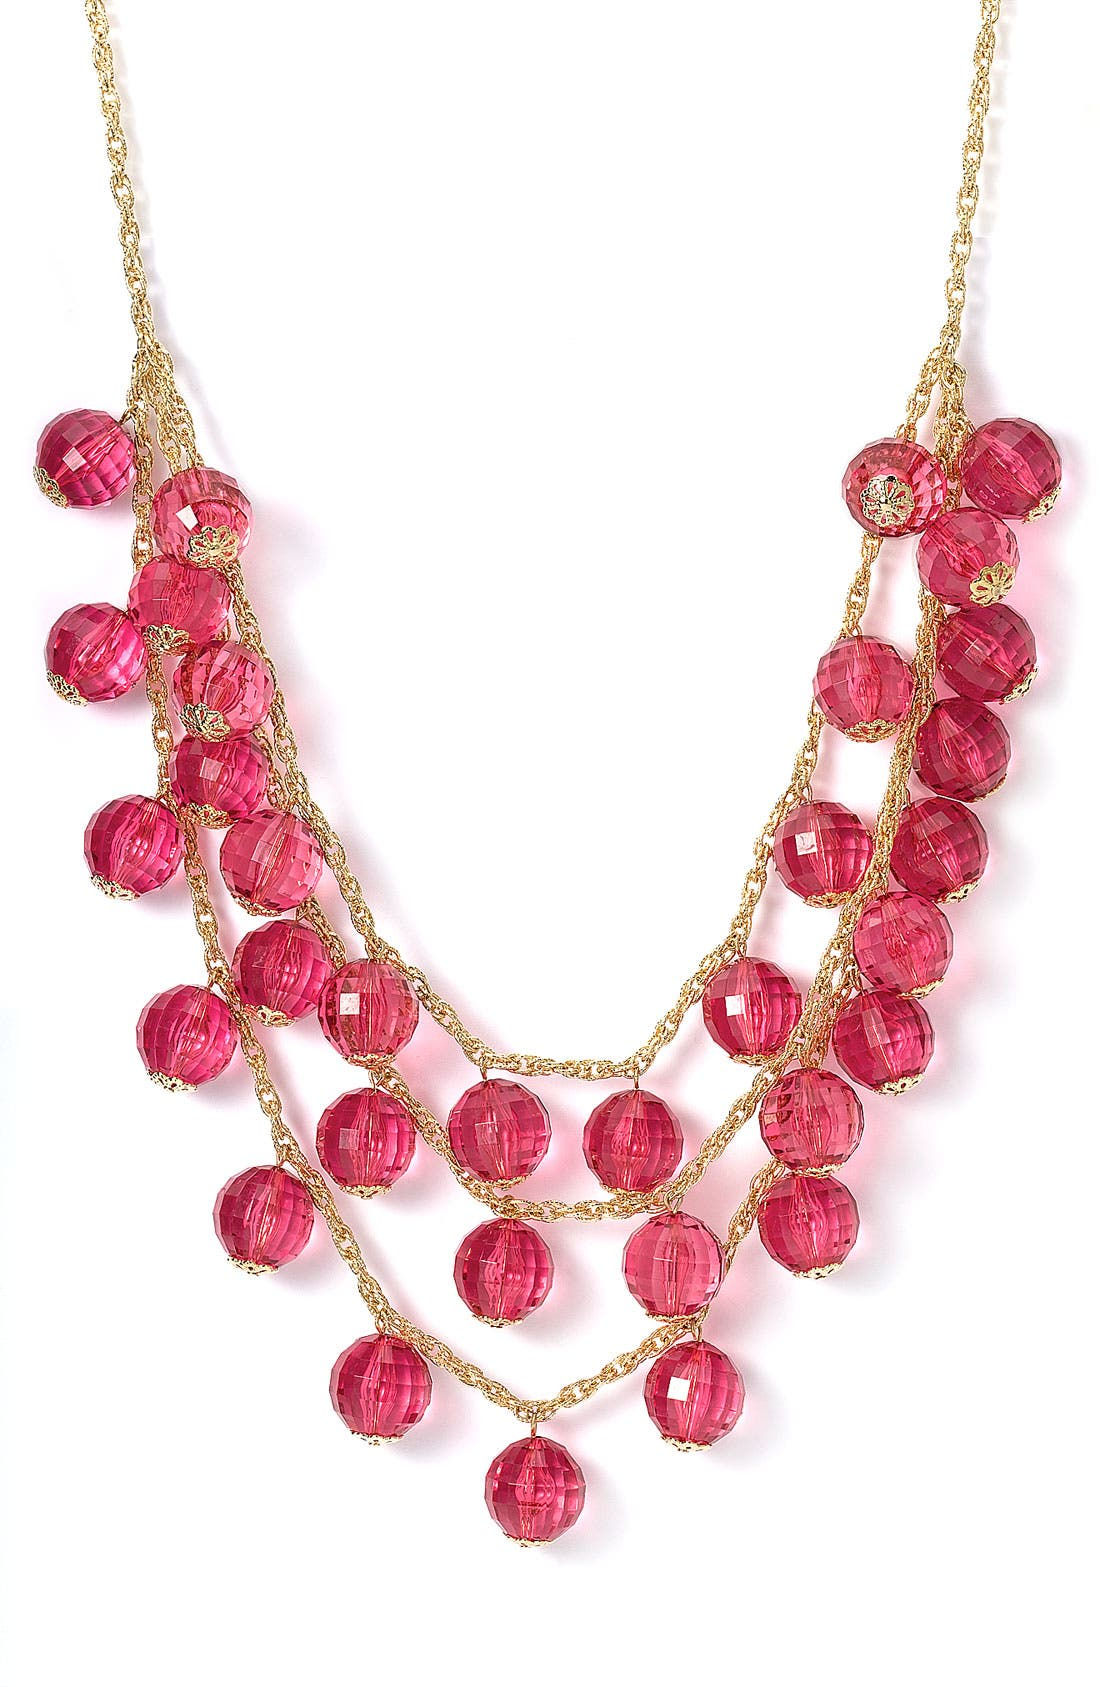 Main Image - kate spade 'gumdrops' long triple layer necklace